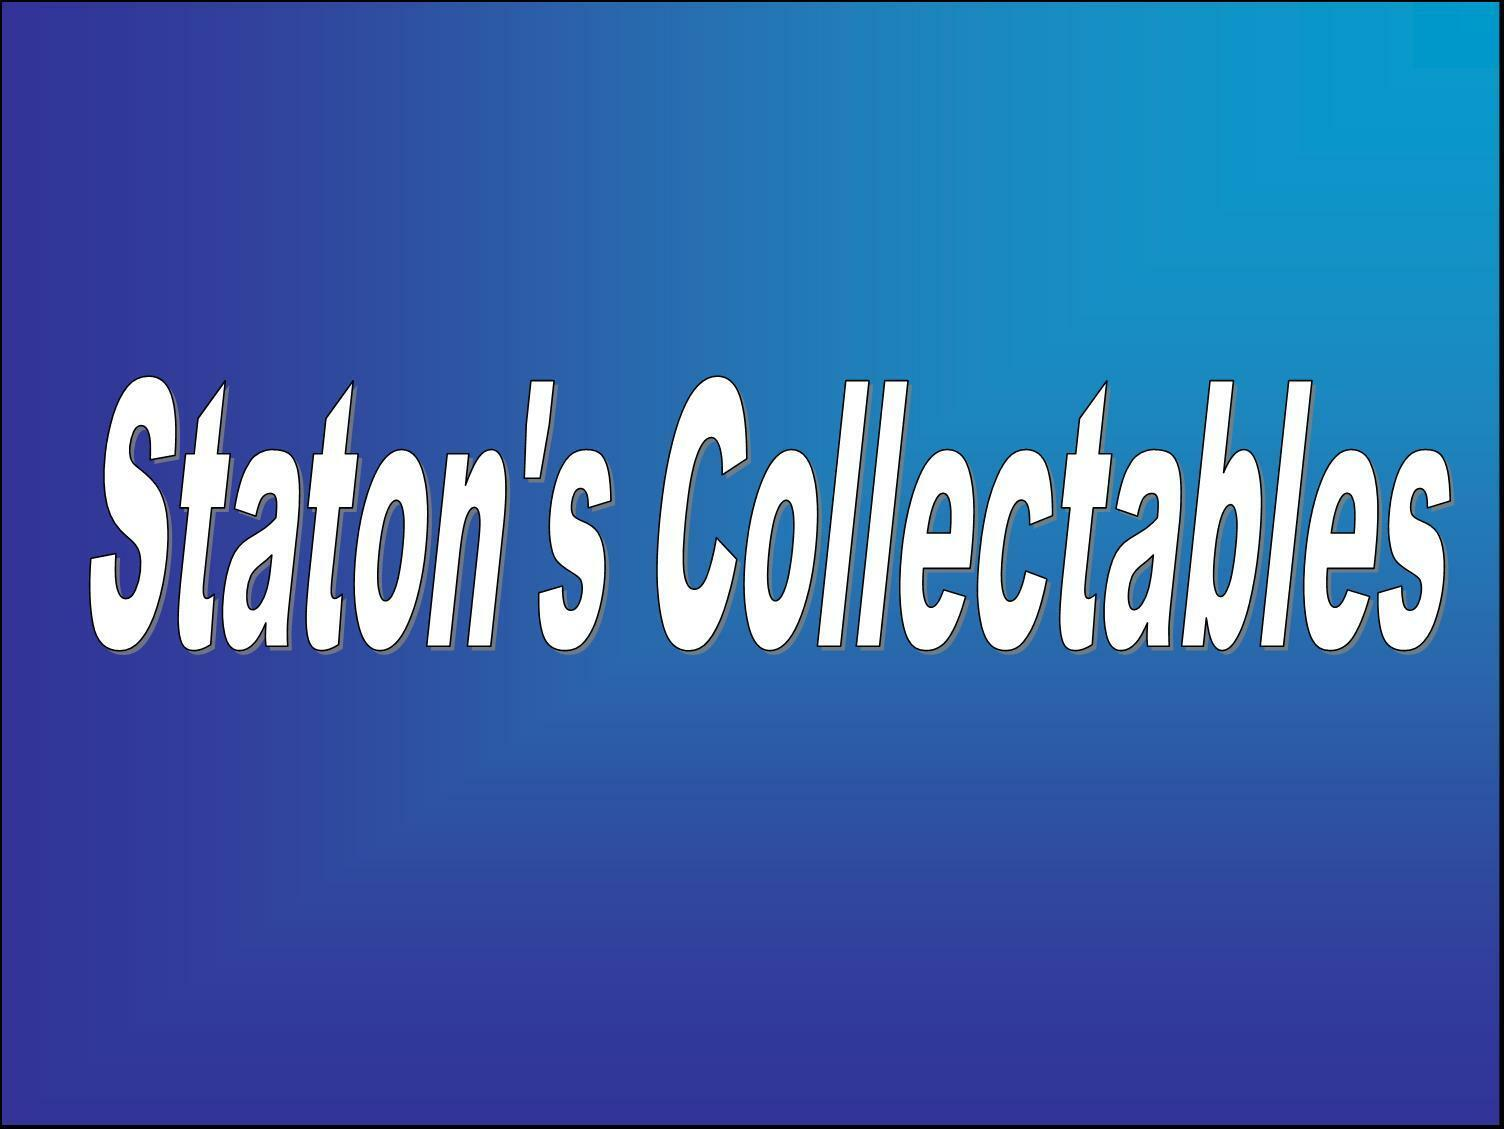 Staton's Collectables